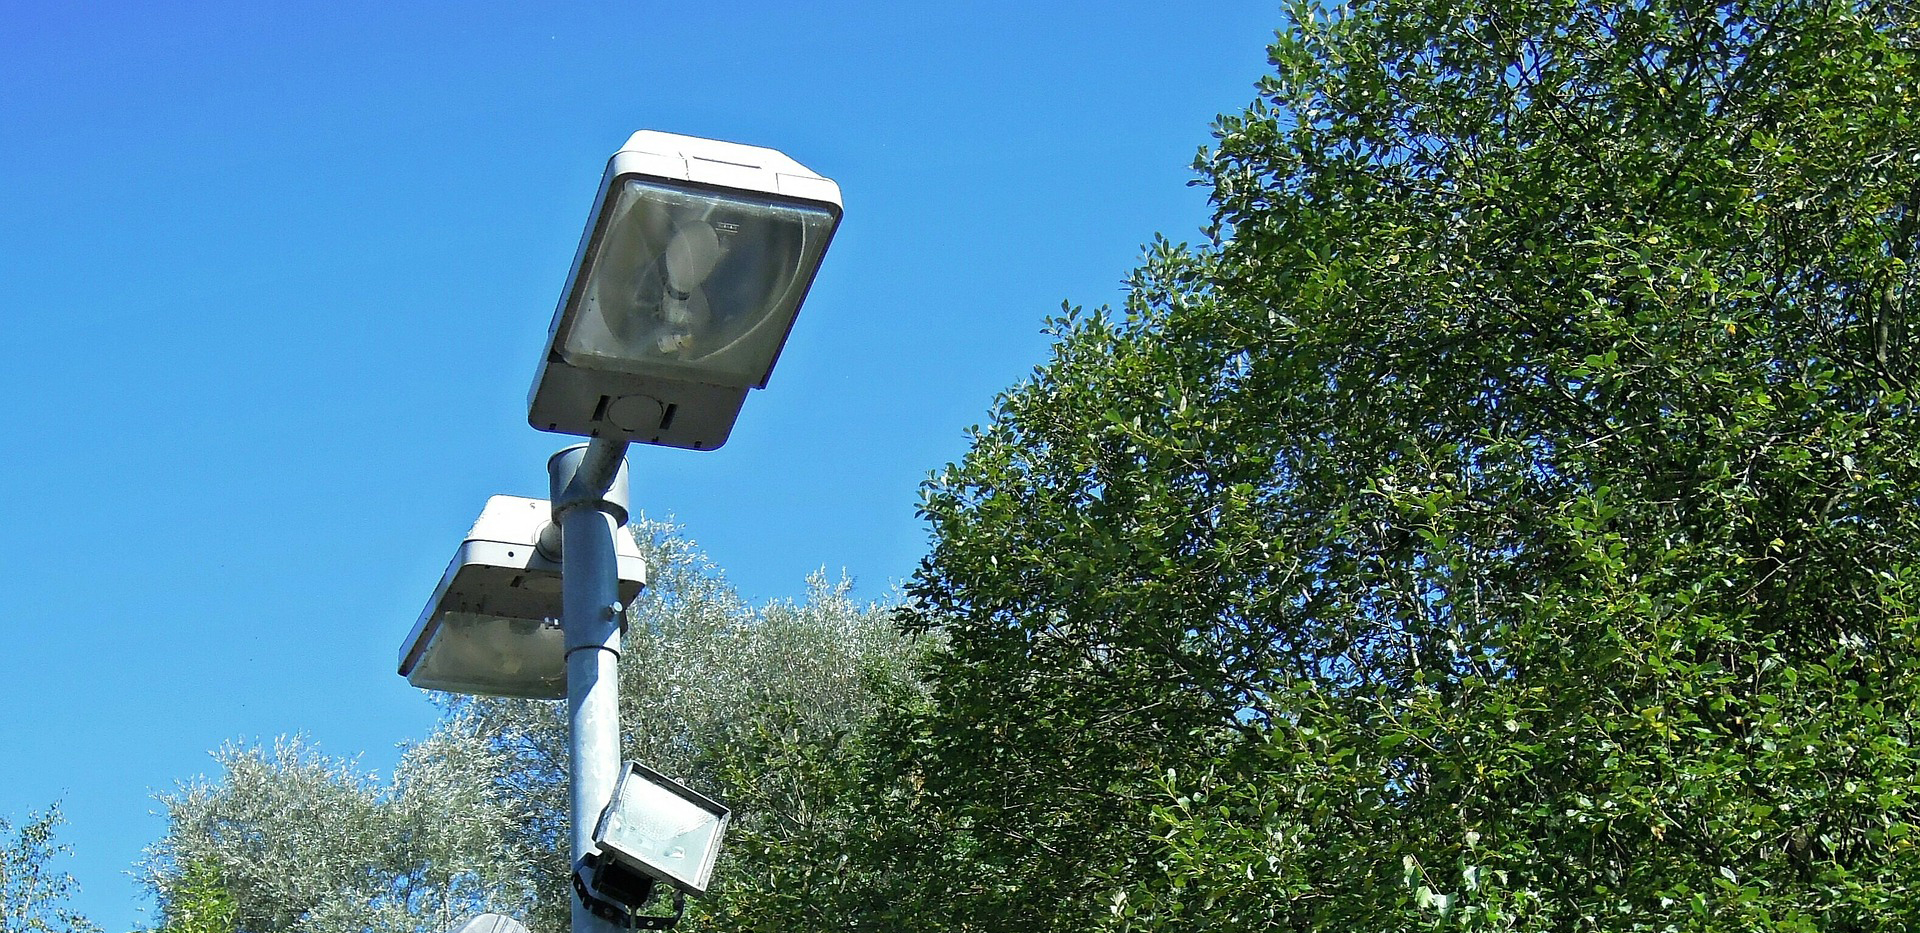 security and outdoor lighting Collingtree